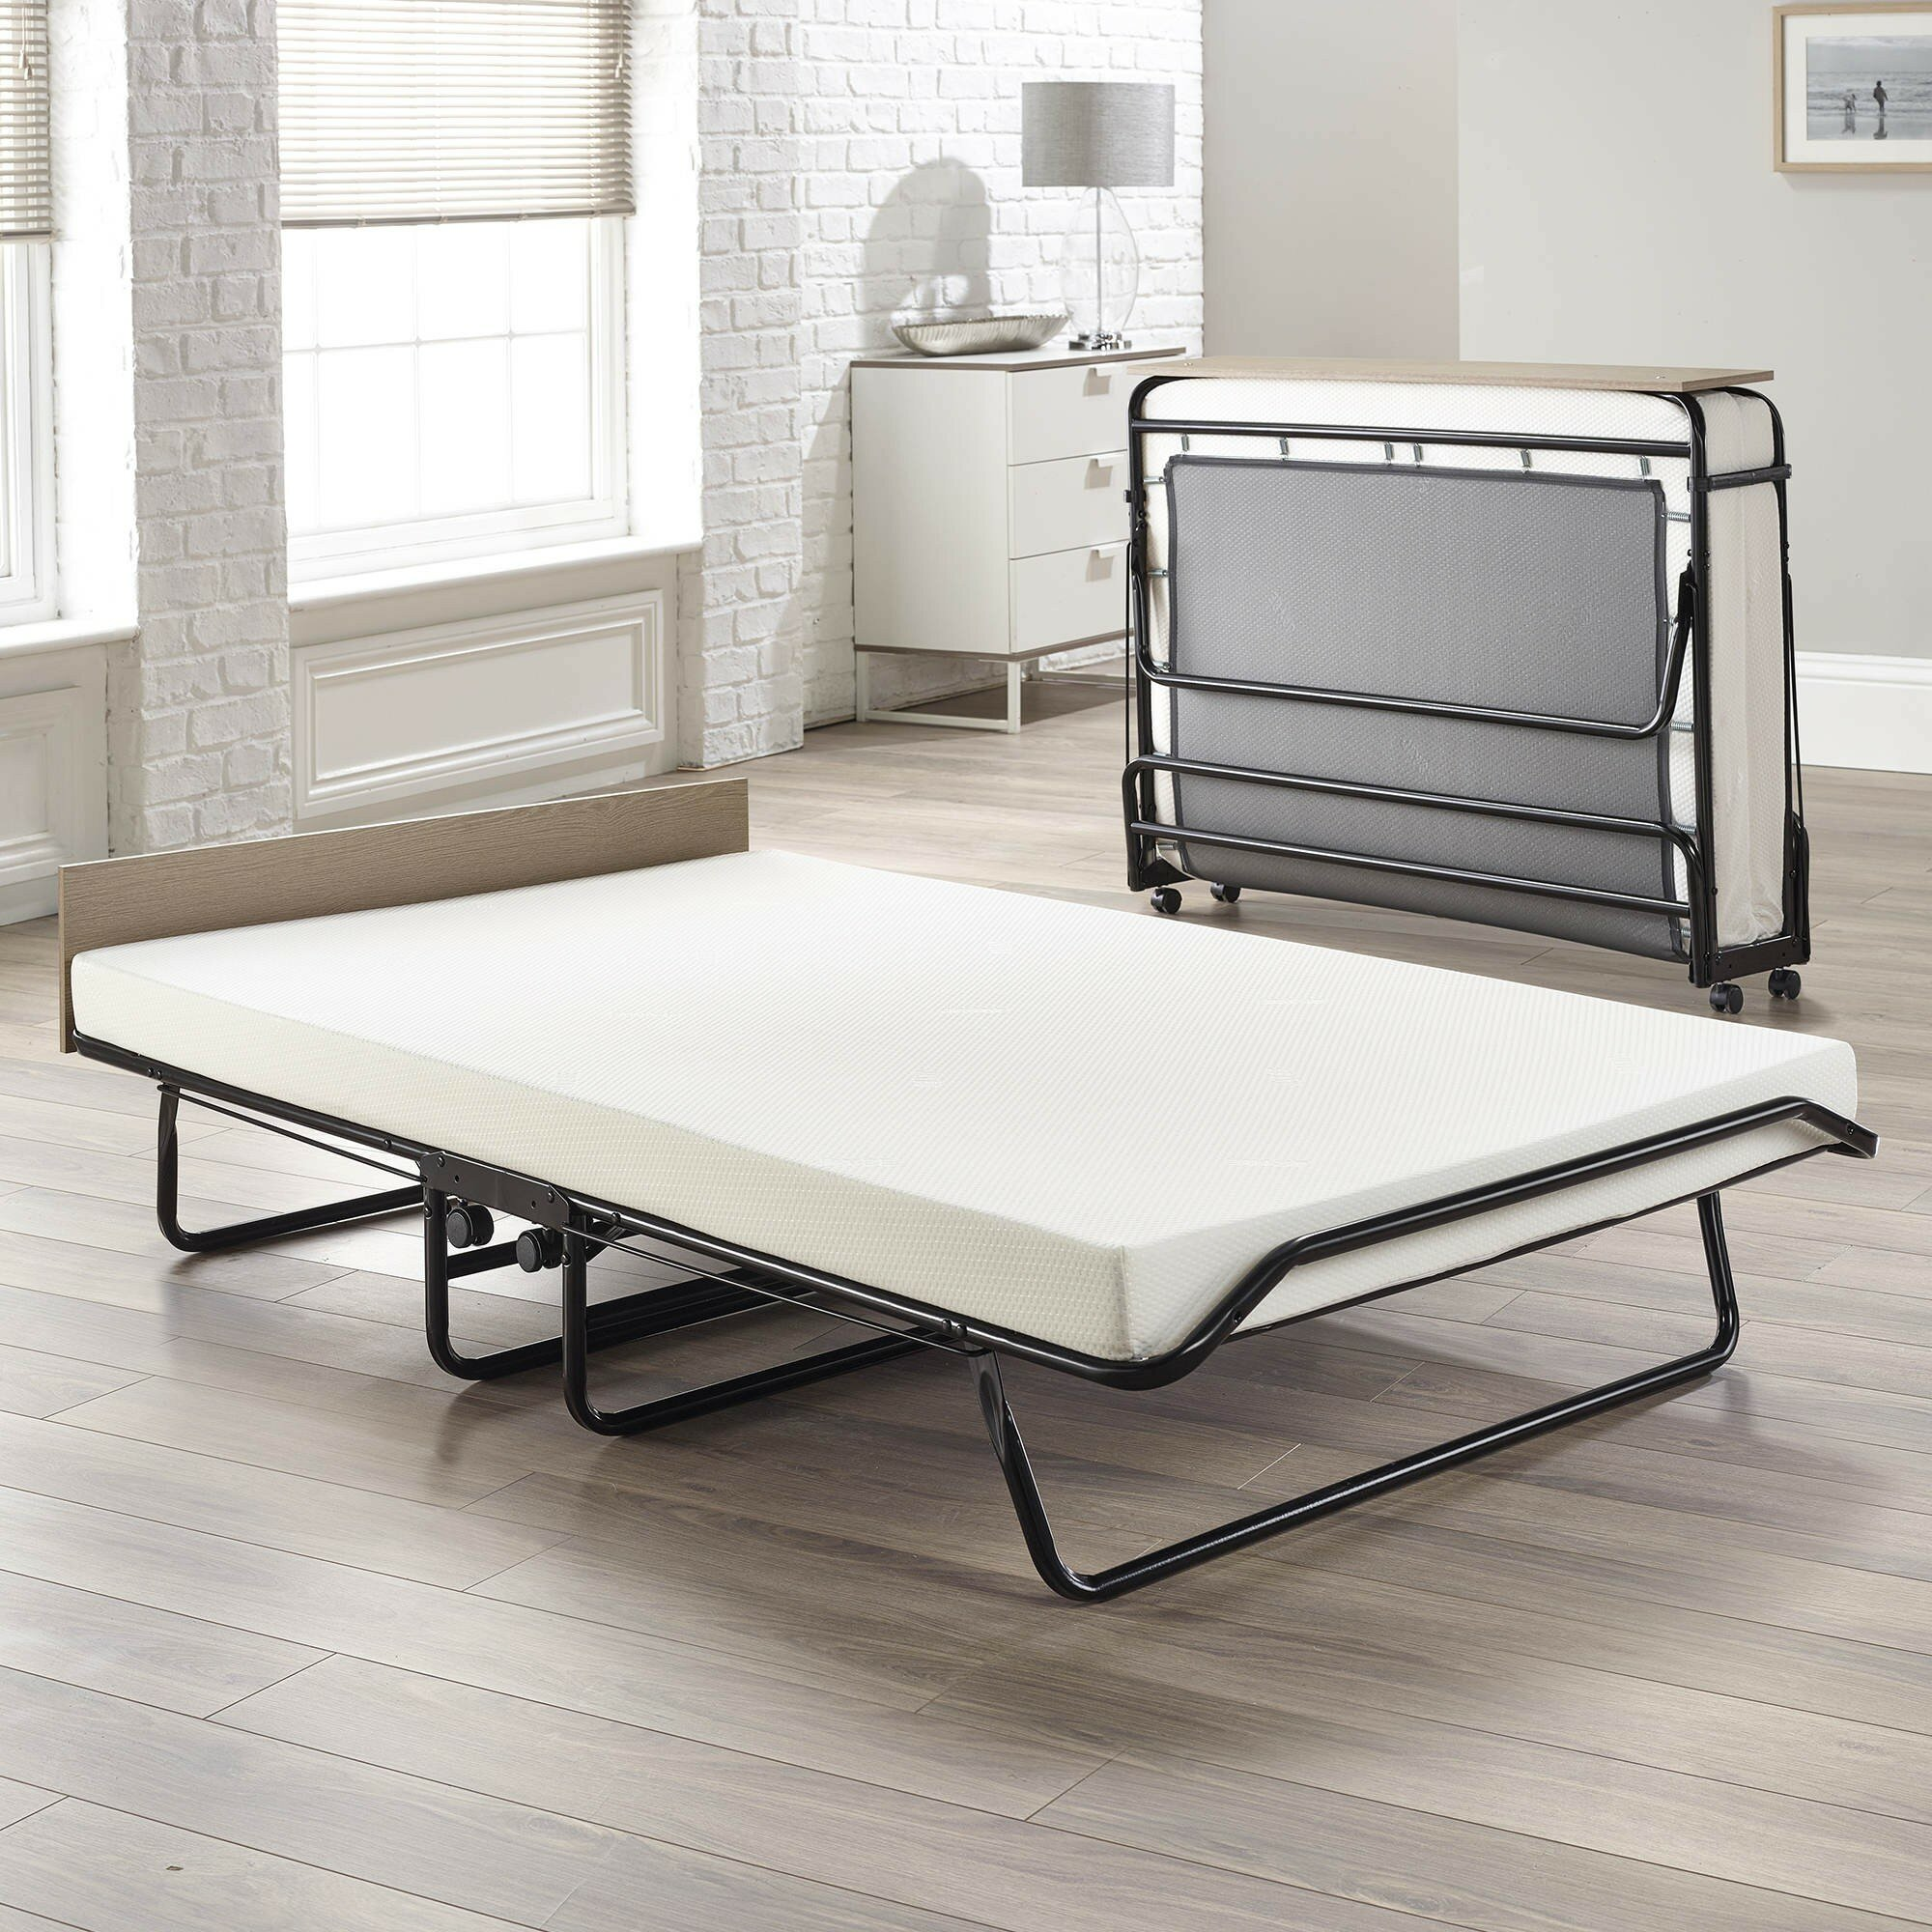 Jay Be Supreme Double Guest Bed With Memory Foam Mattress